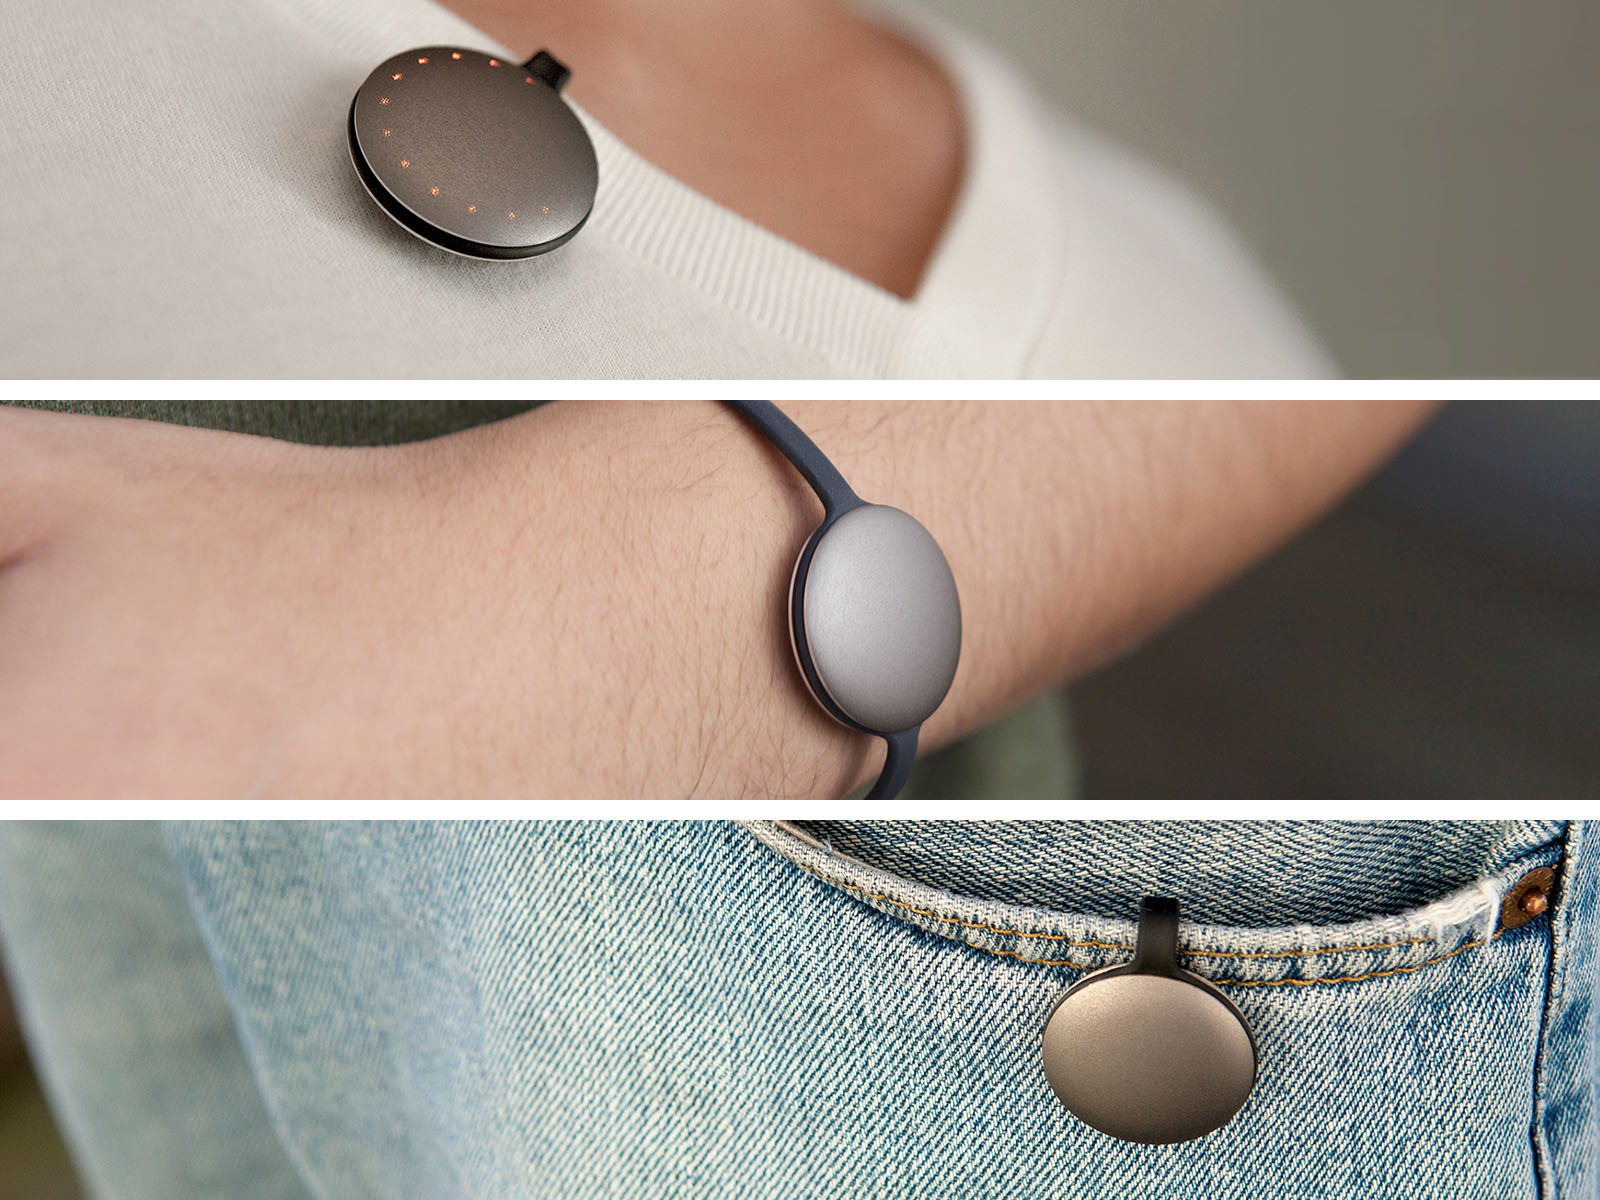 Misfit designed the Shine fitness tracker to be wearable in many locations.